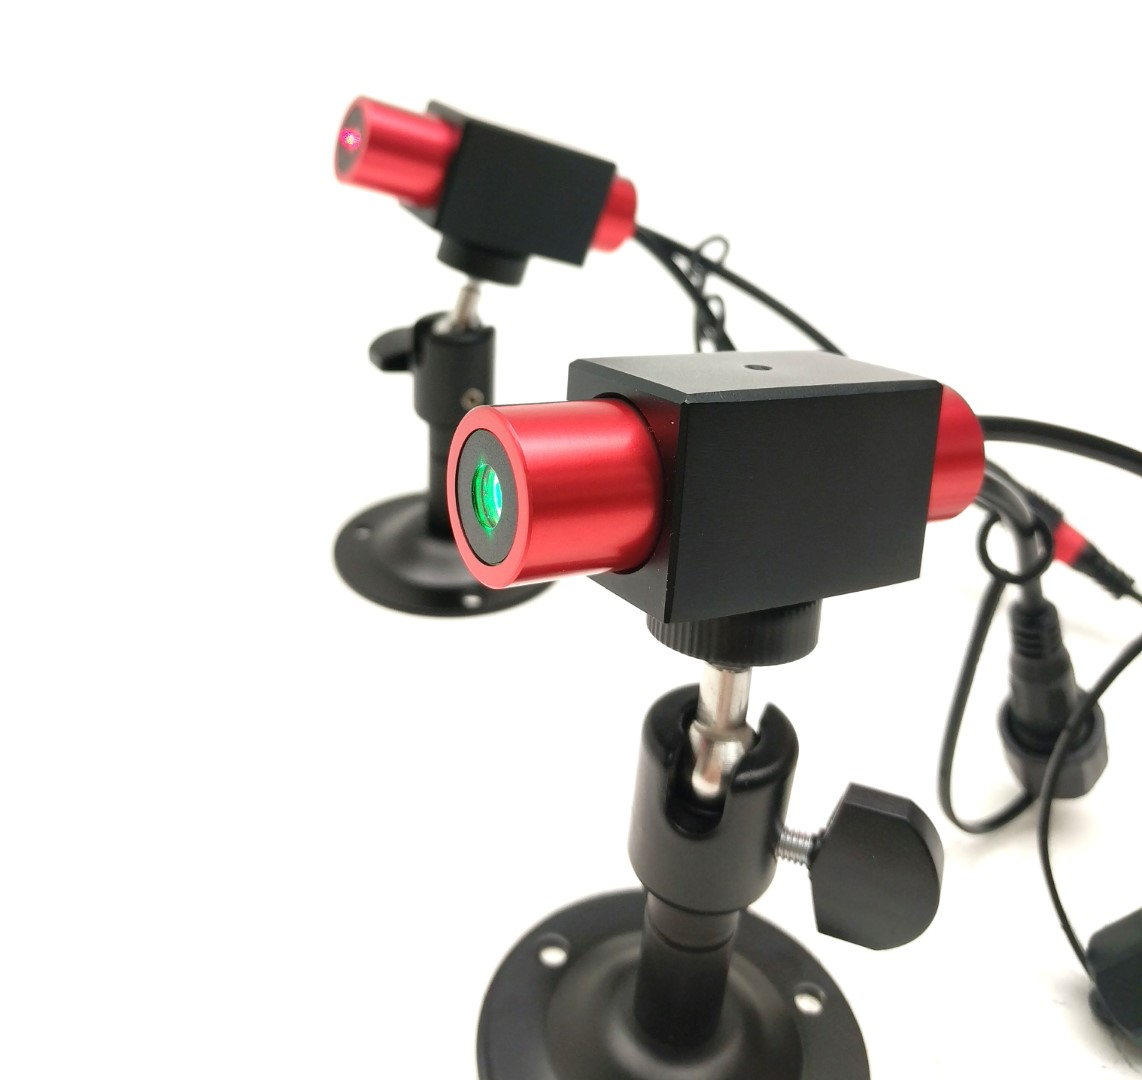 5 mW 520 nm Green Premium Structured Reticle of Dots Laser, 5° fan angle, adjustable focus, TTL+, Sealed IP67